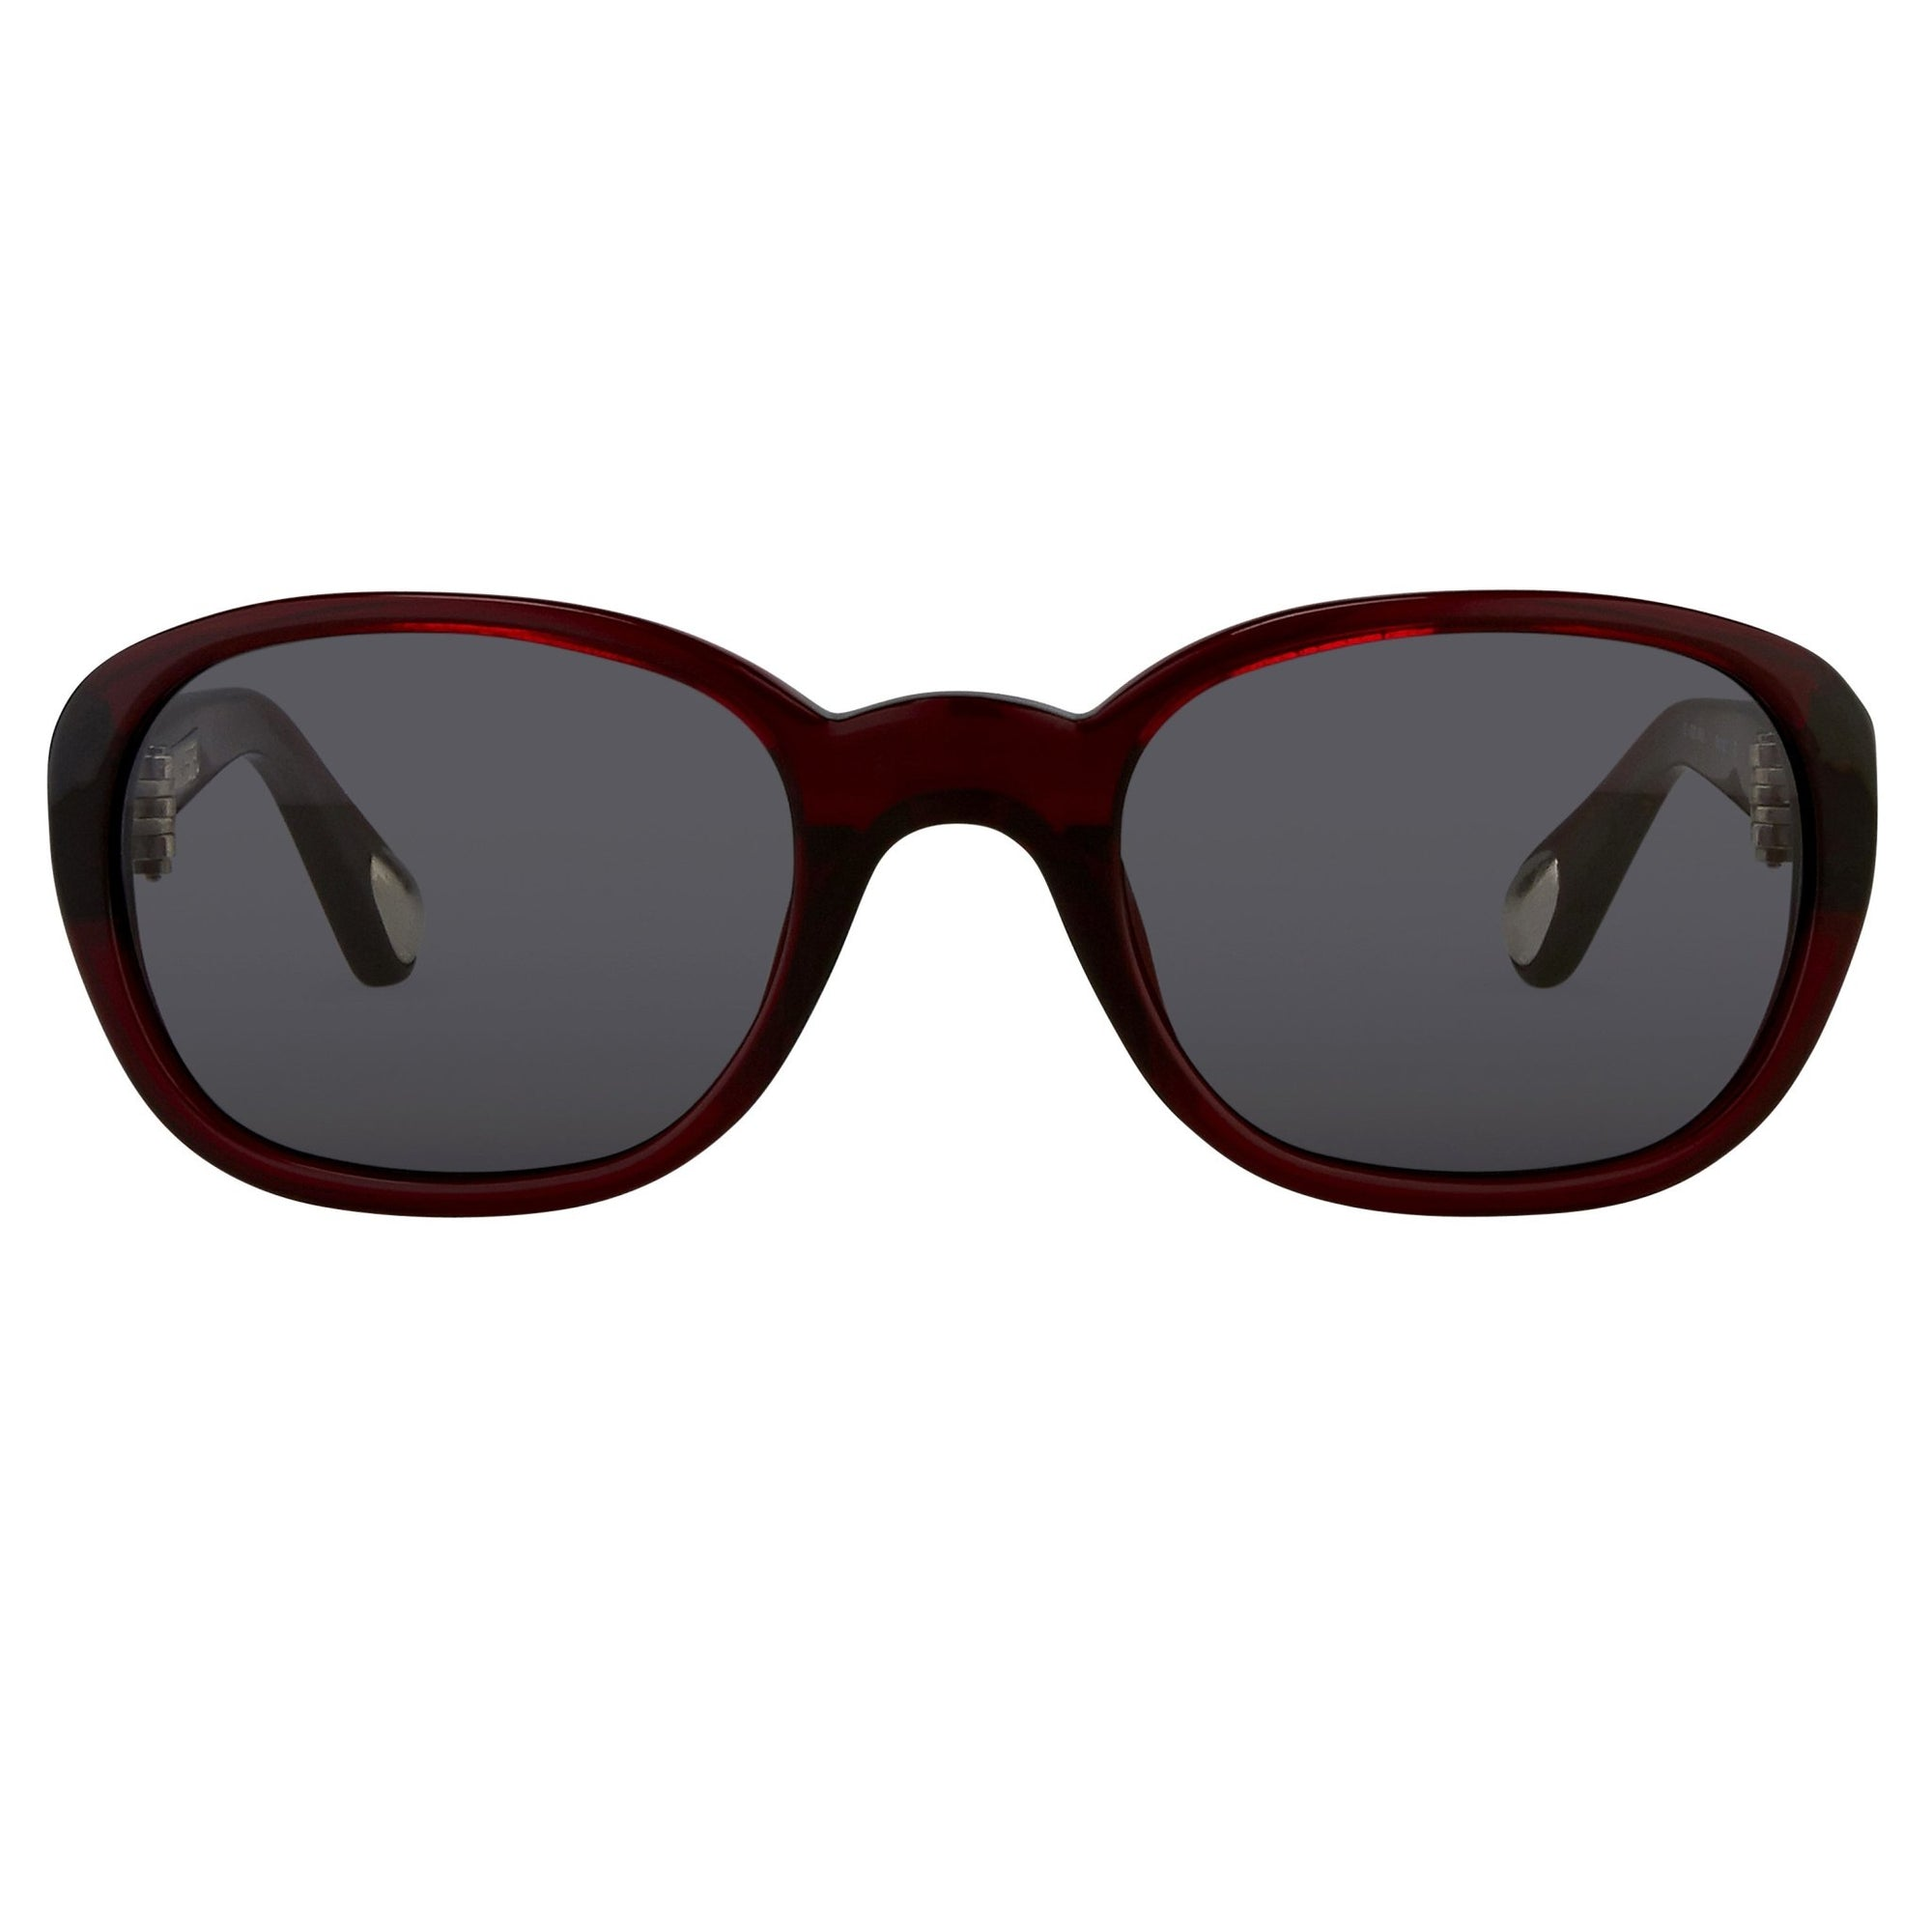 Ann Demeulemeester Sunglasses Oval Bordeaux Red 925 Silver with Blue Lenses Category 2 AD8C3SUN - Watches & Crystals